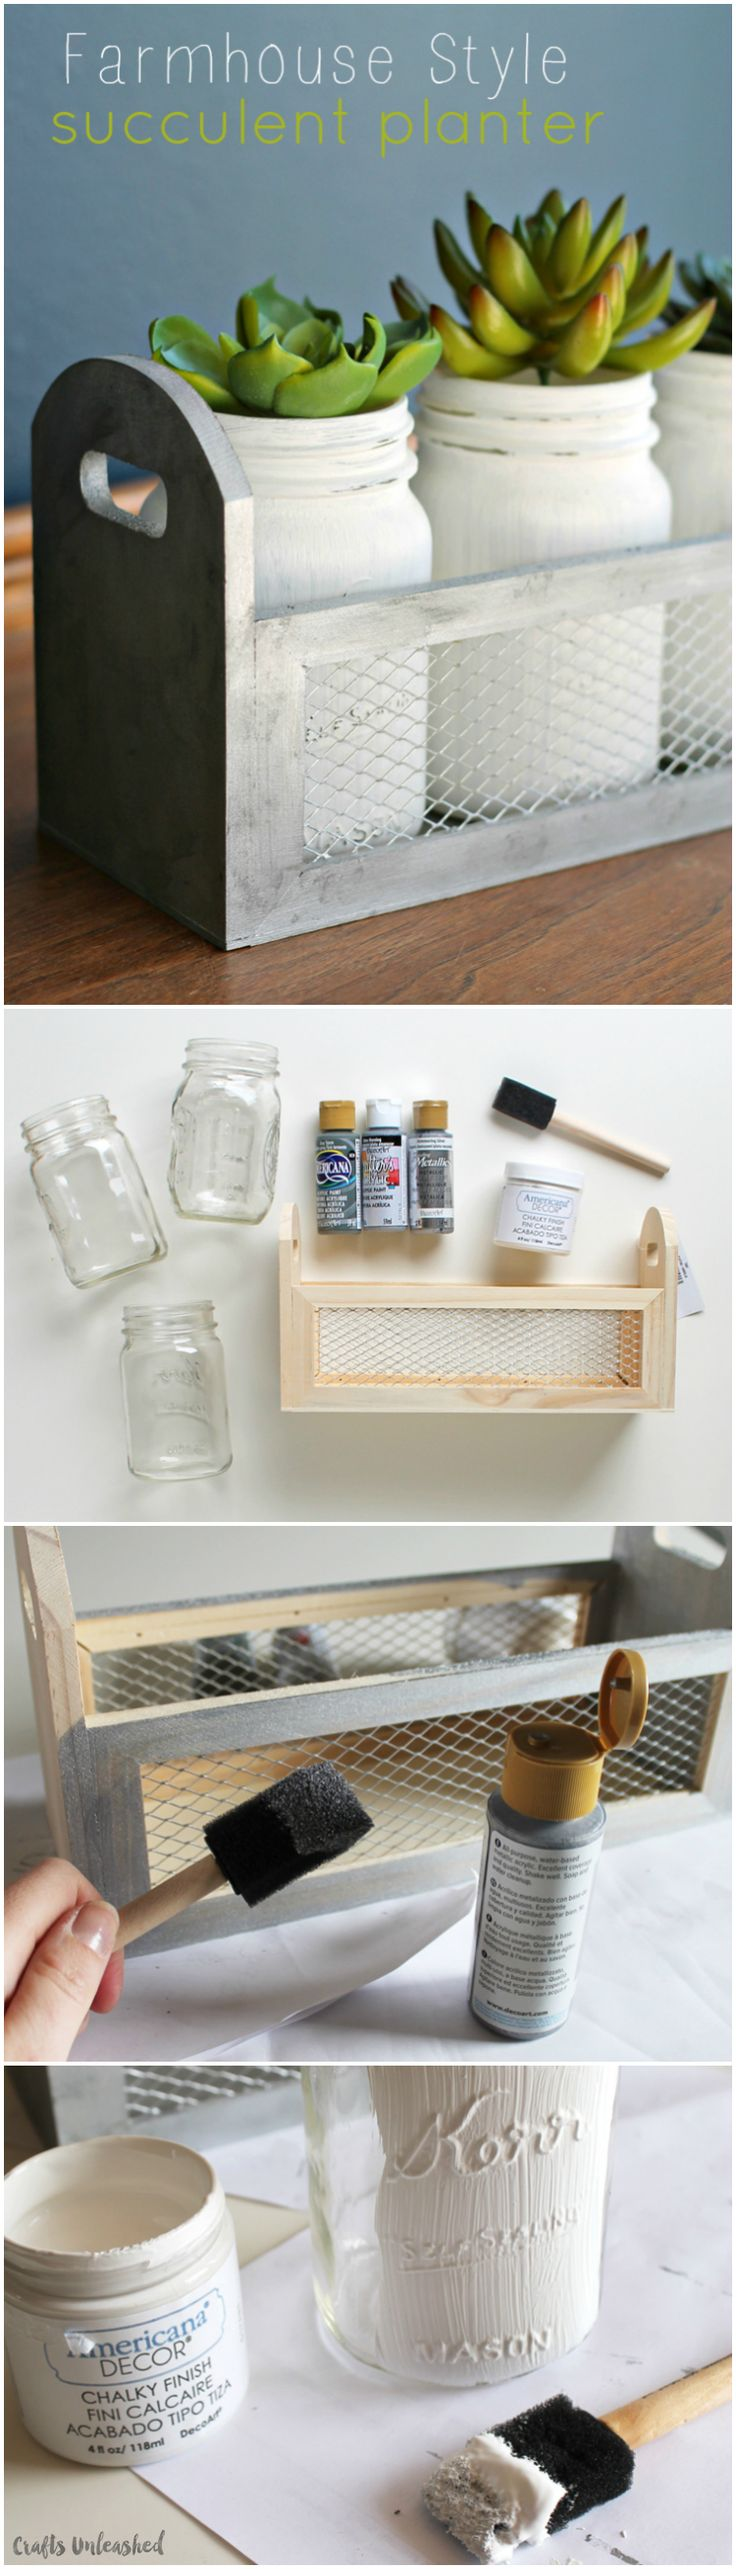 This stylish DIY succulent planter box is the perfect way to add farmhouse flair to an end table, bookcase or entry table.